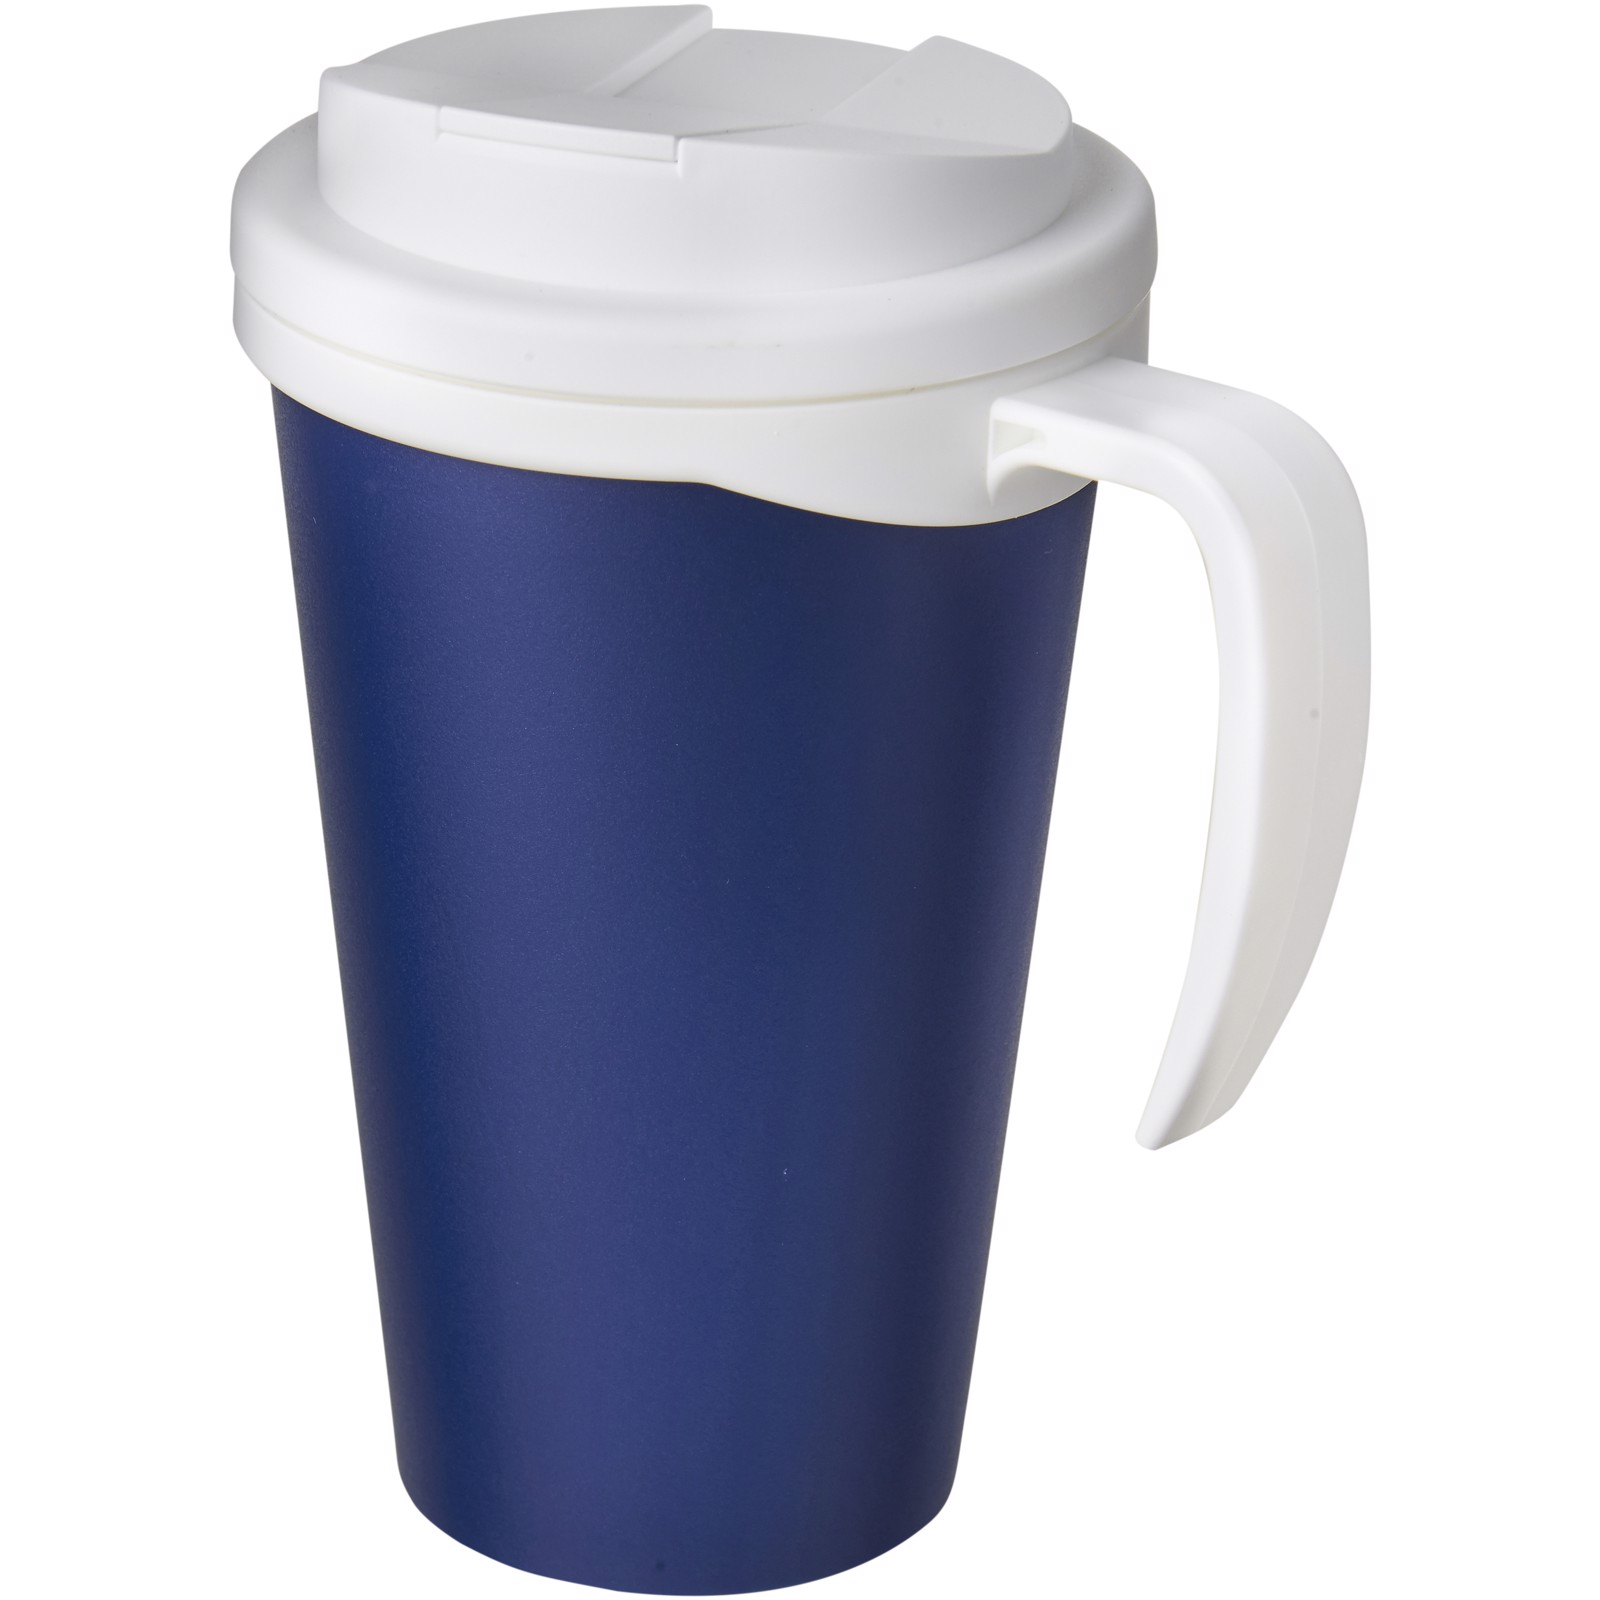 Americano Grande 350 ml mug with spill-proof lid - Blue / White